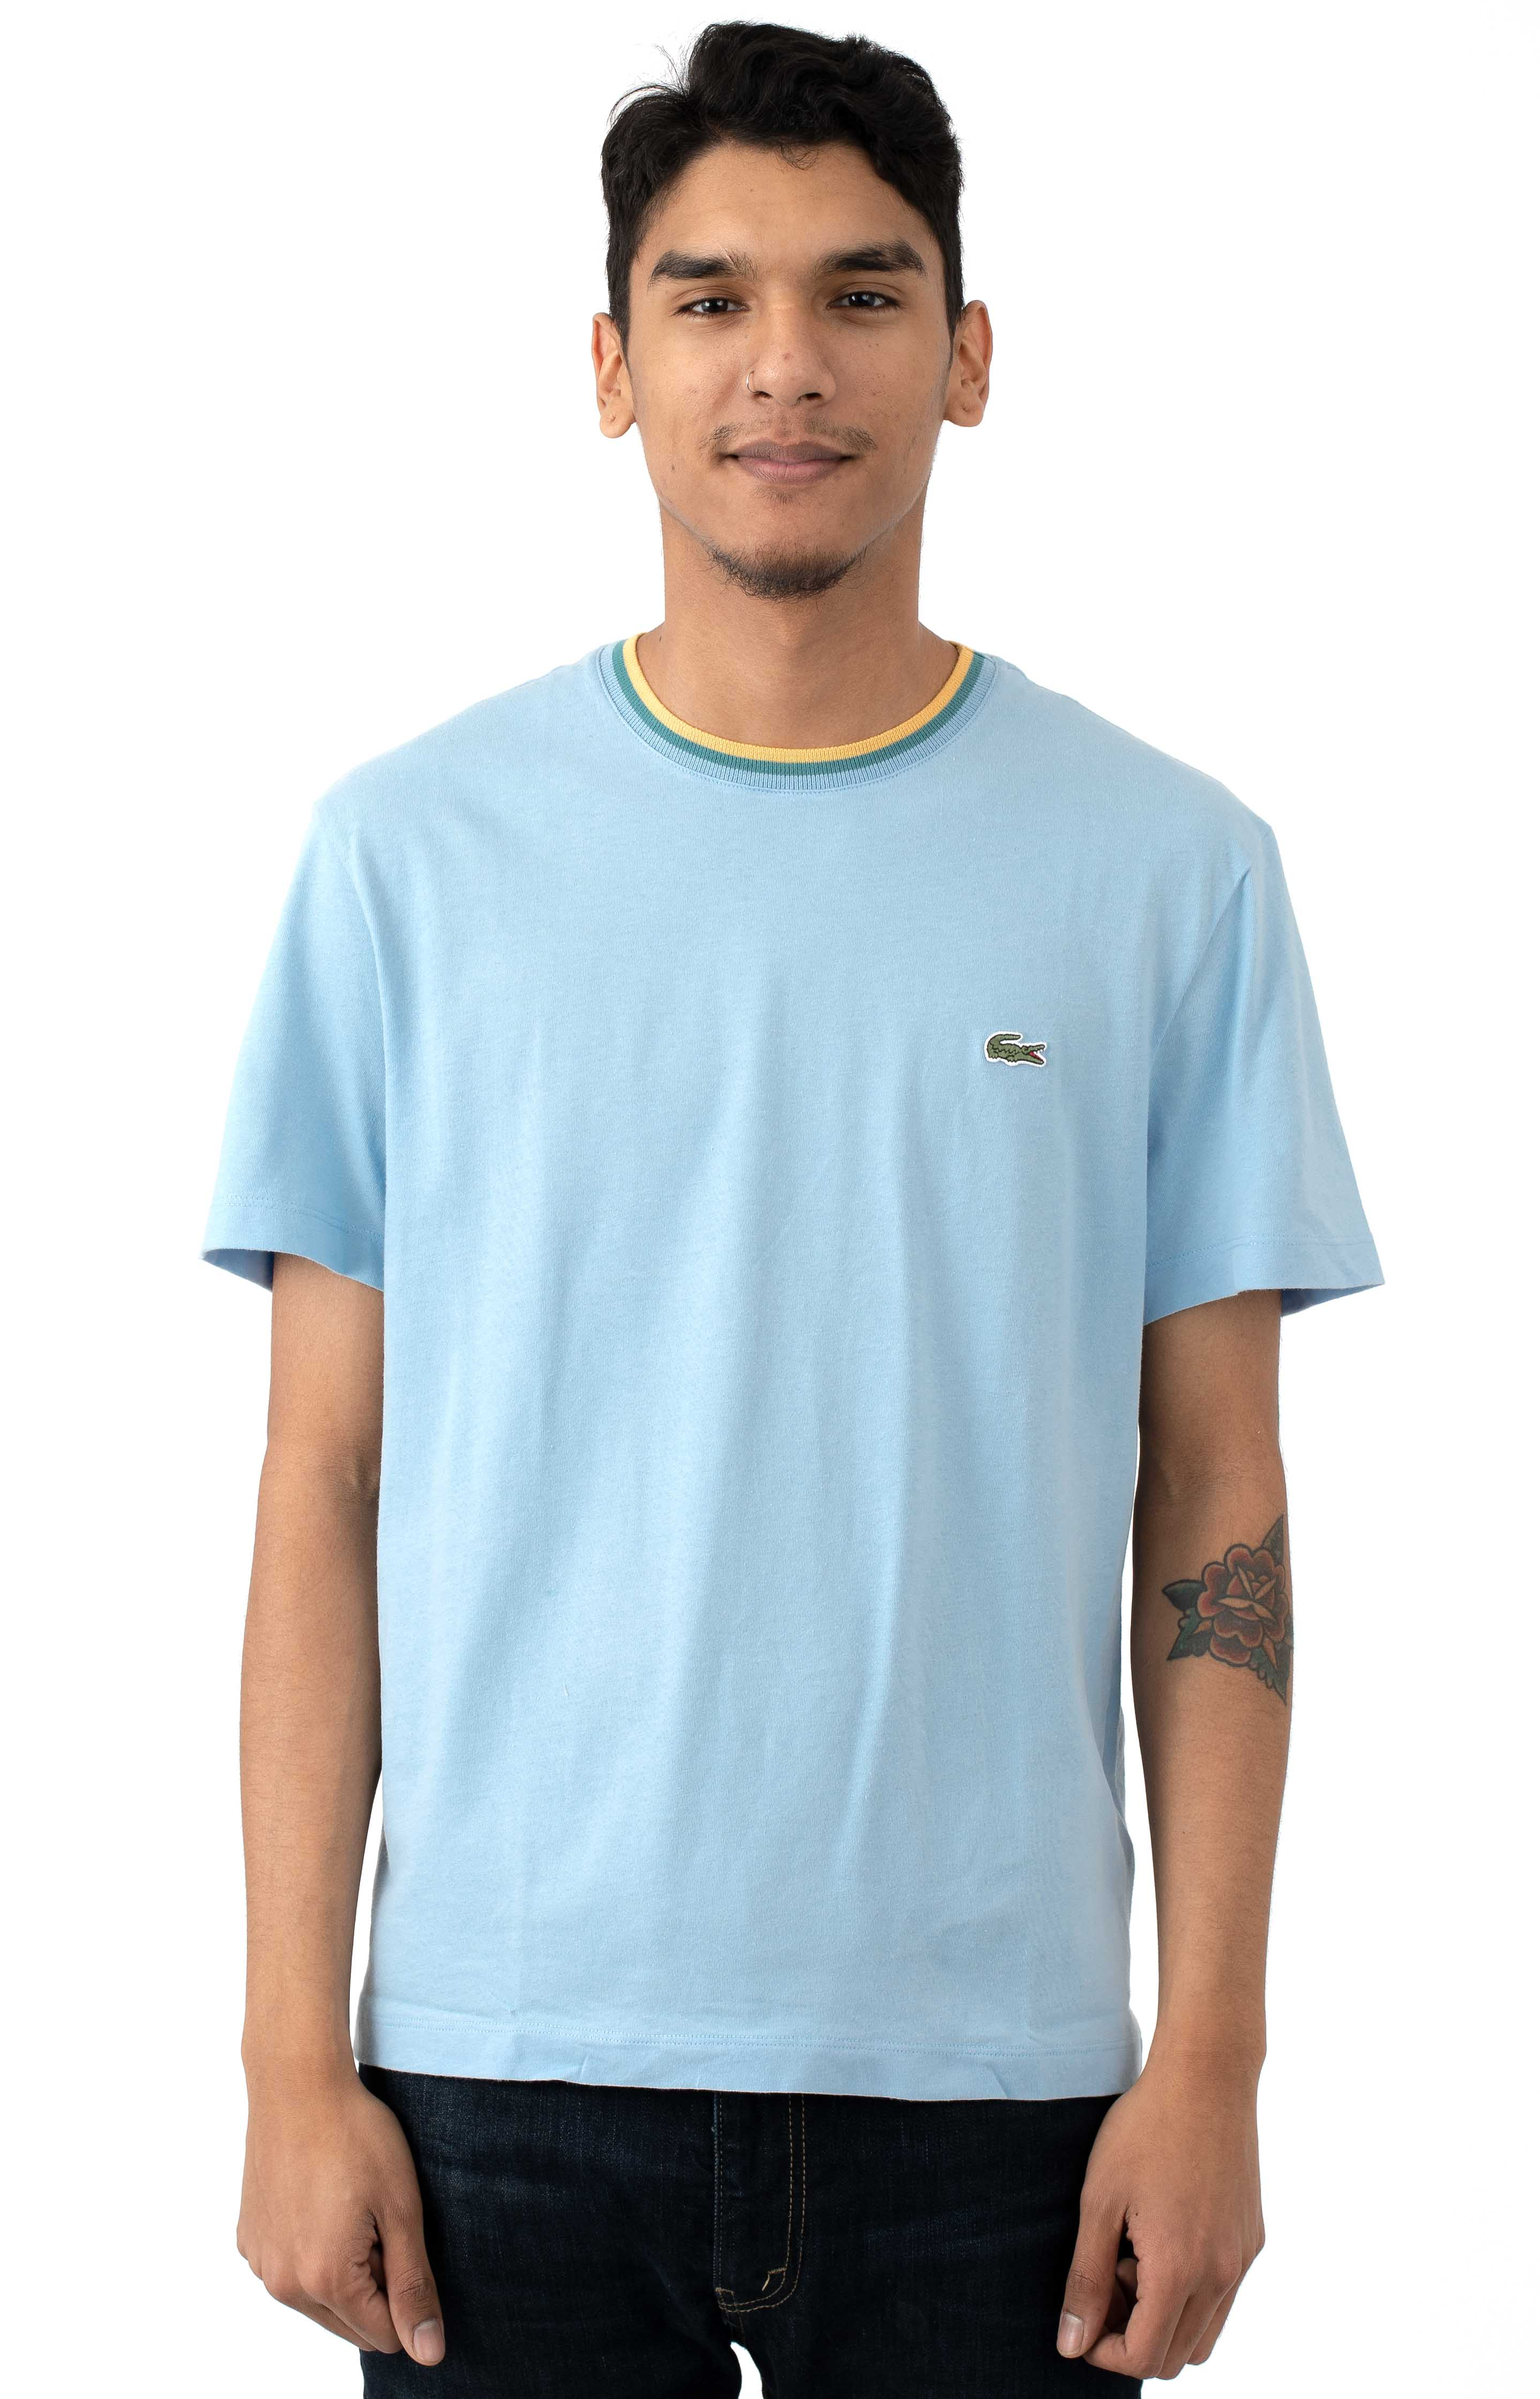 SS Striped Top Jersey T-Shirt - Light Blue